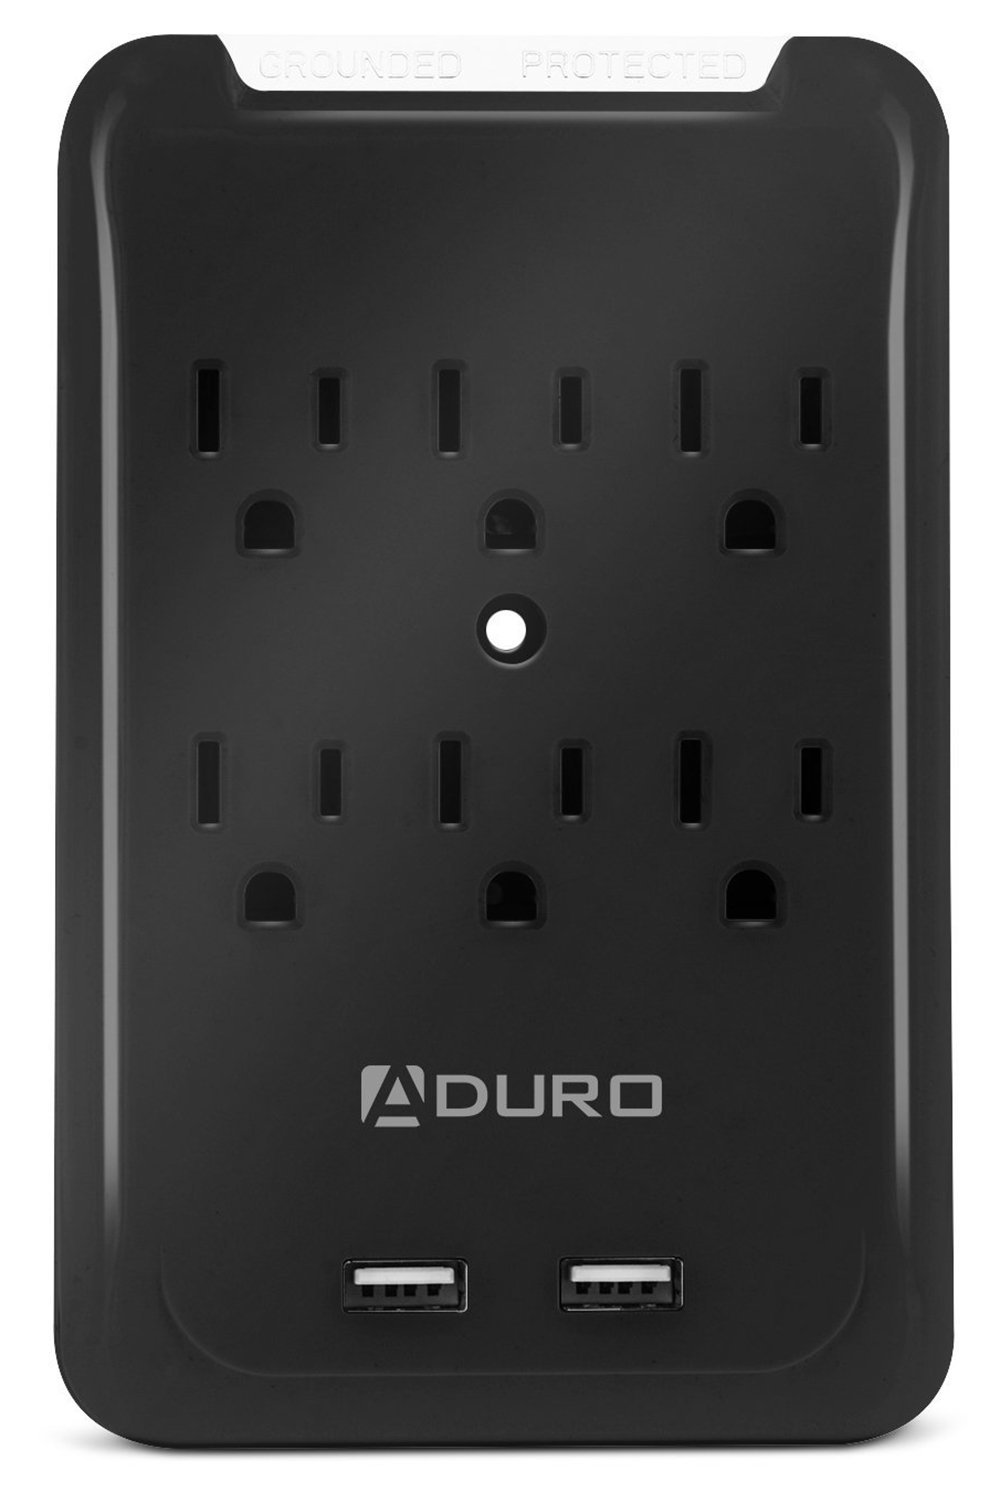 Aduro Surge Multi Charging Station w/6 AC Outlets & Dual USB Ports for iPhone, Android, MP3 Players & other USB Enabled Devices (Black)